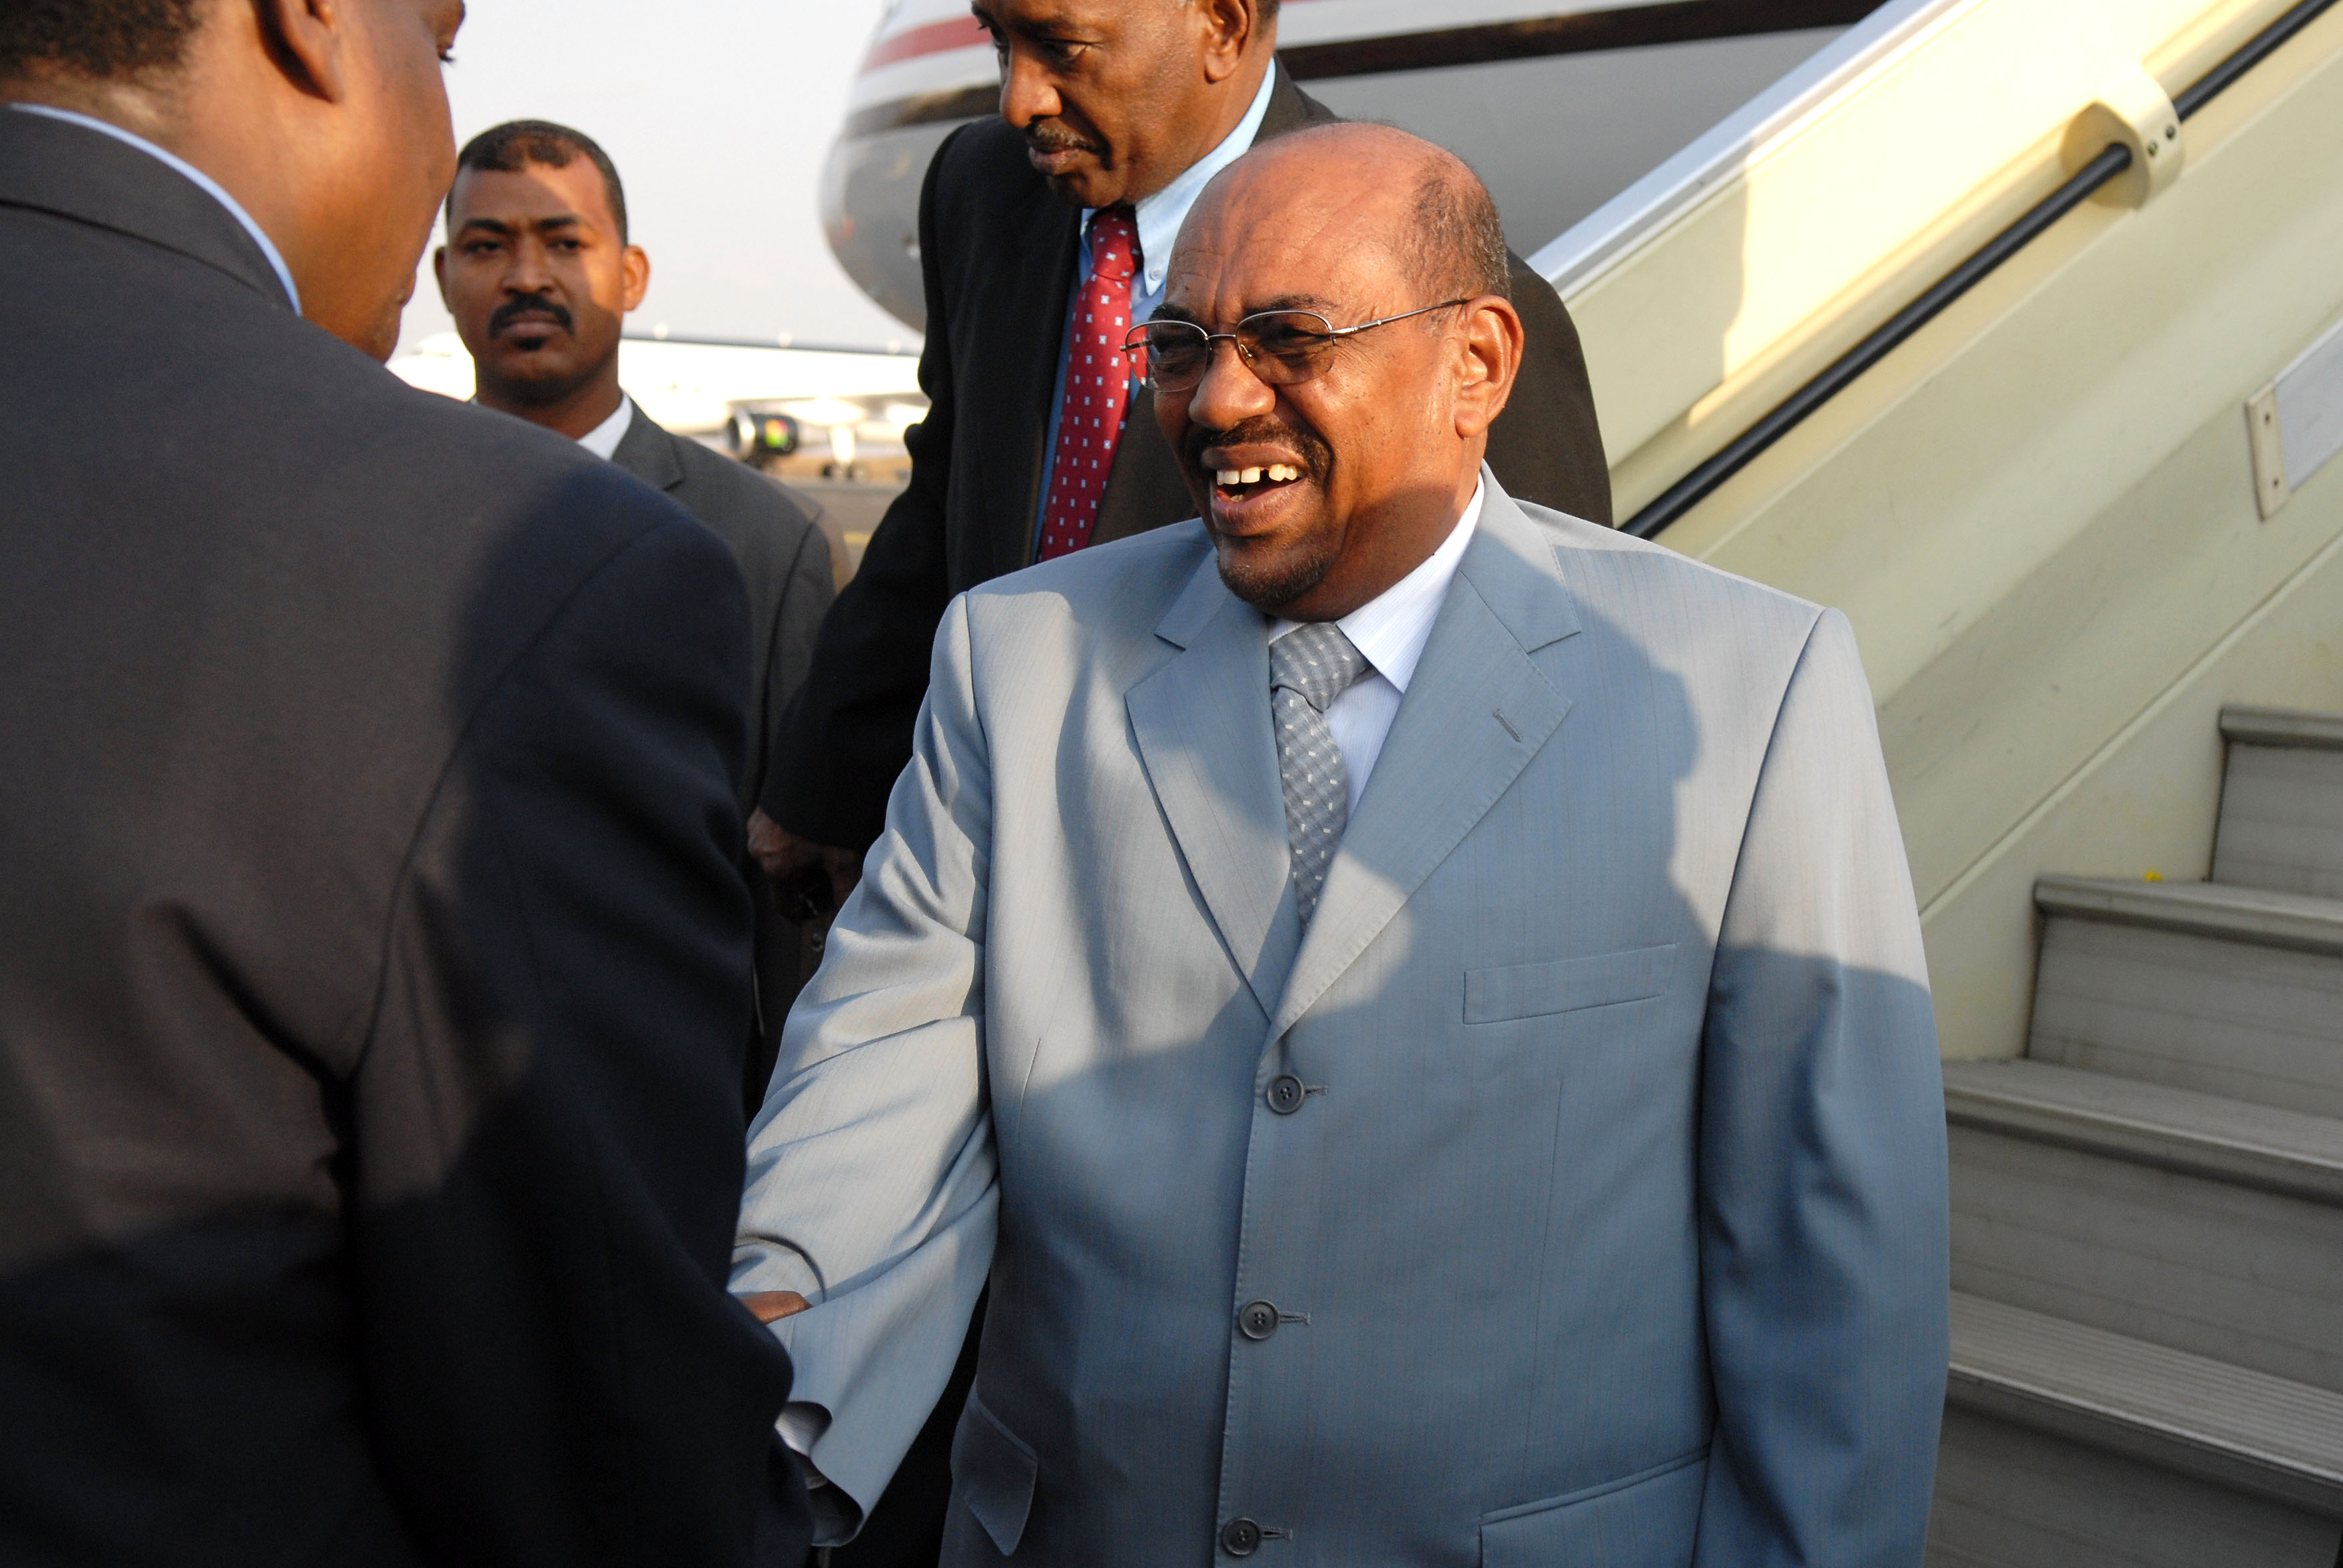 Deposed President of Sudan